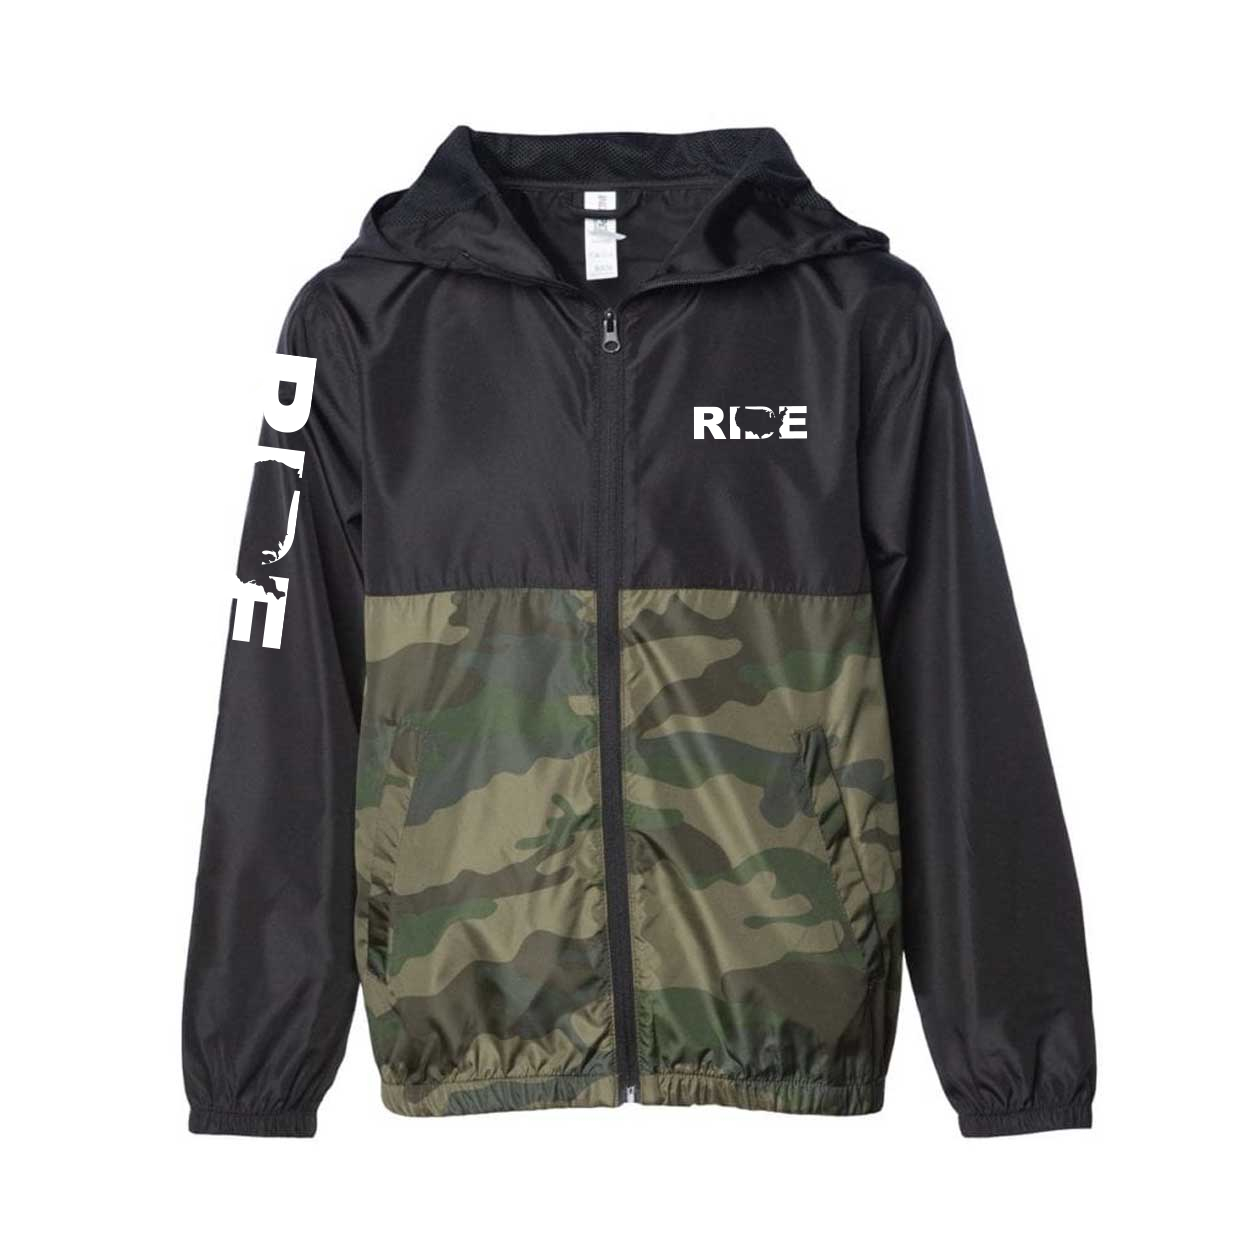 Ride United States Classic Youth Lightweight Windbreaker Black/Forest Camo (White Logo)